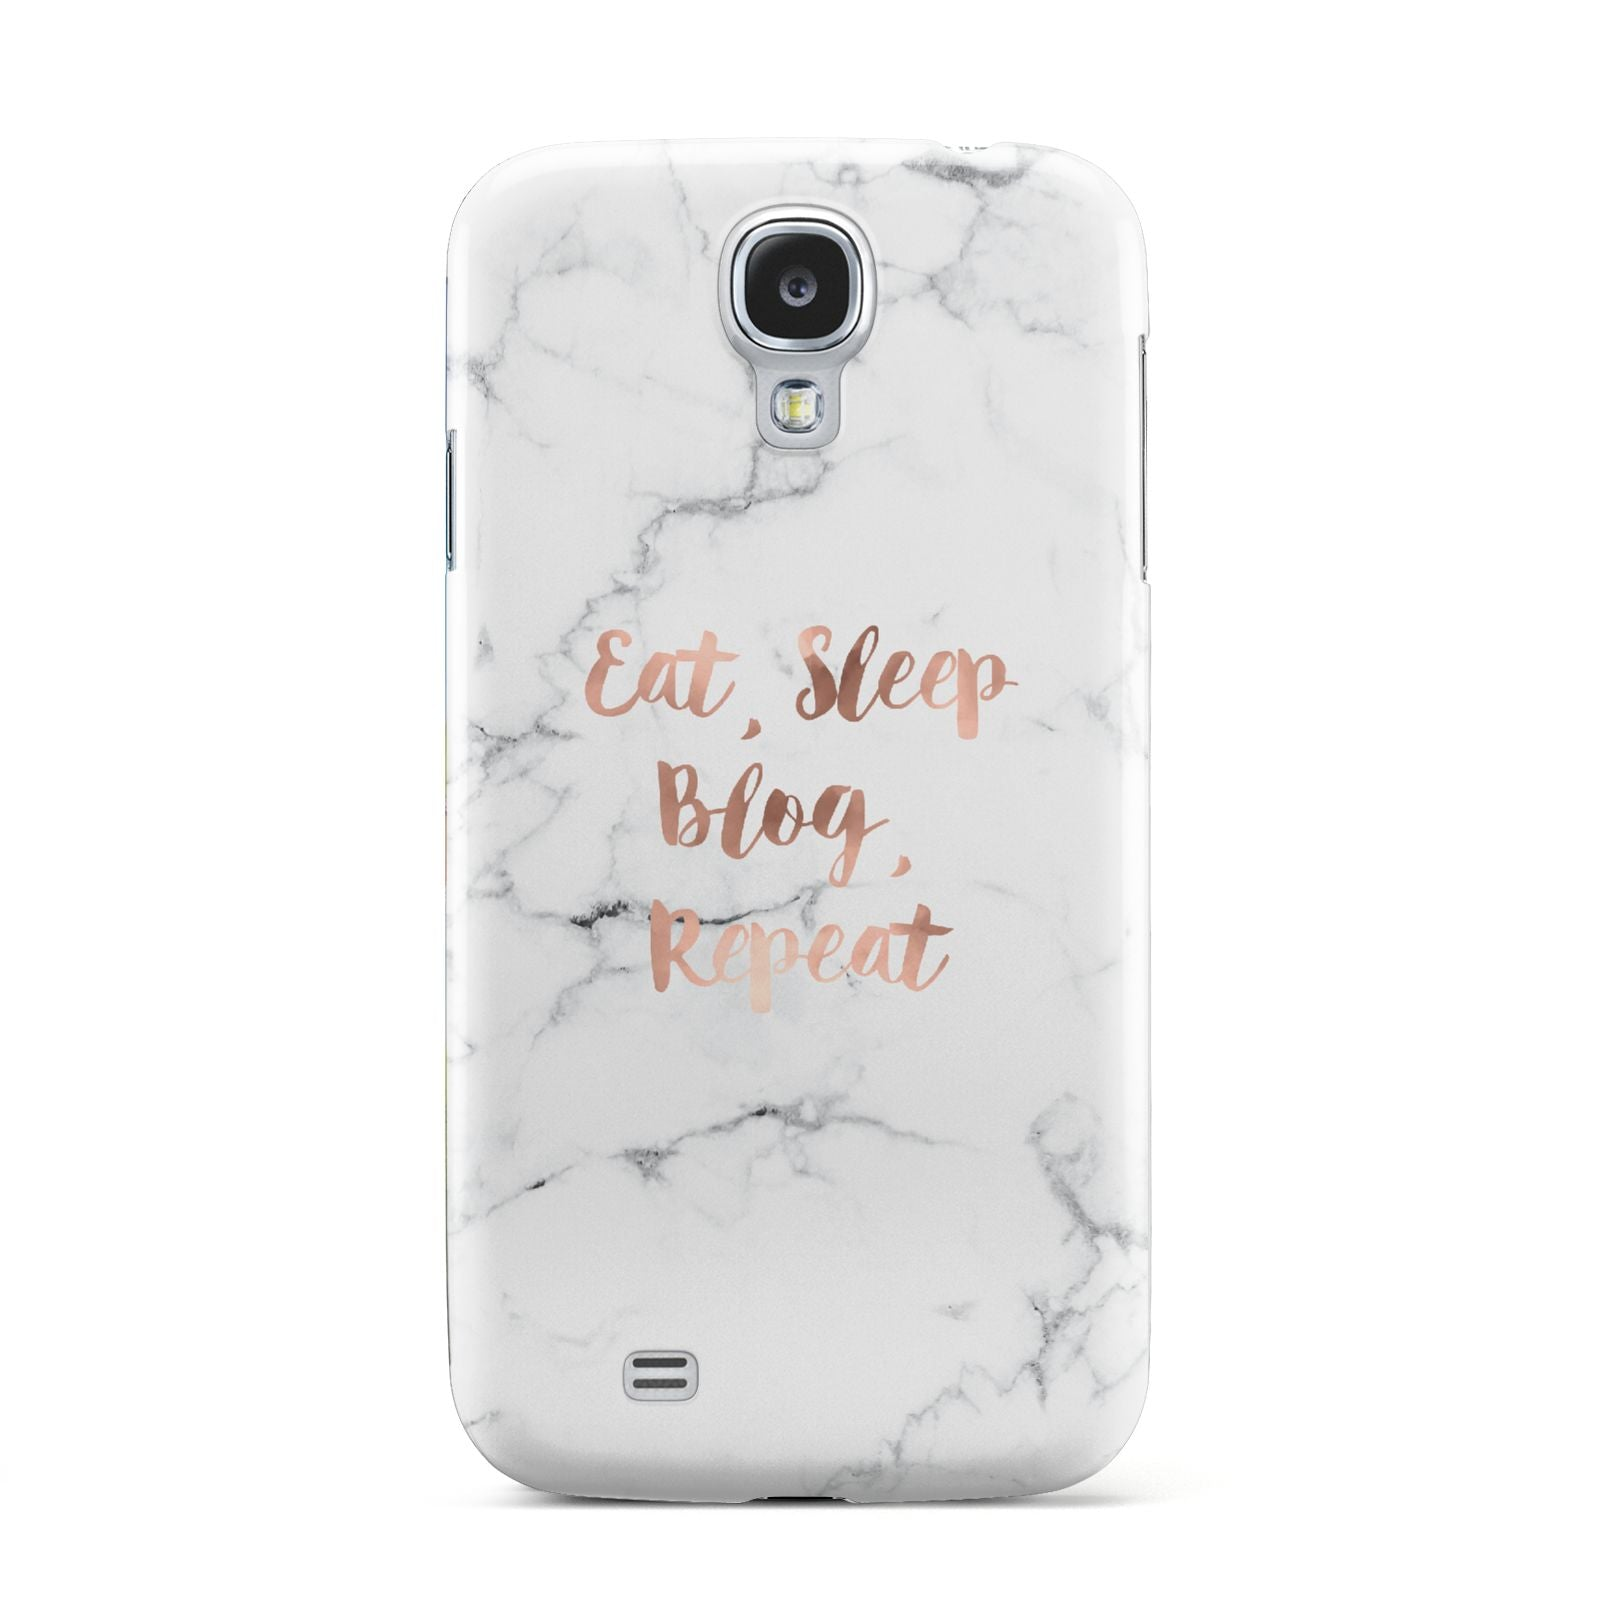 Eat Sleep Blog Repeat Marble Effect Samsung Galaxy S4 Case